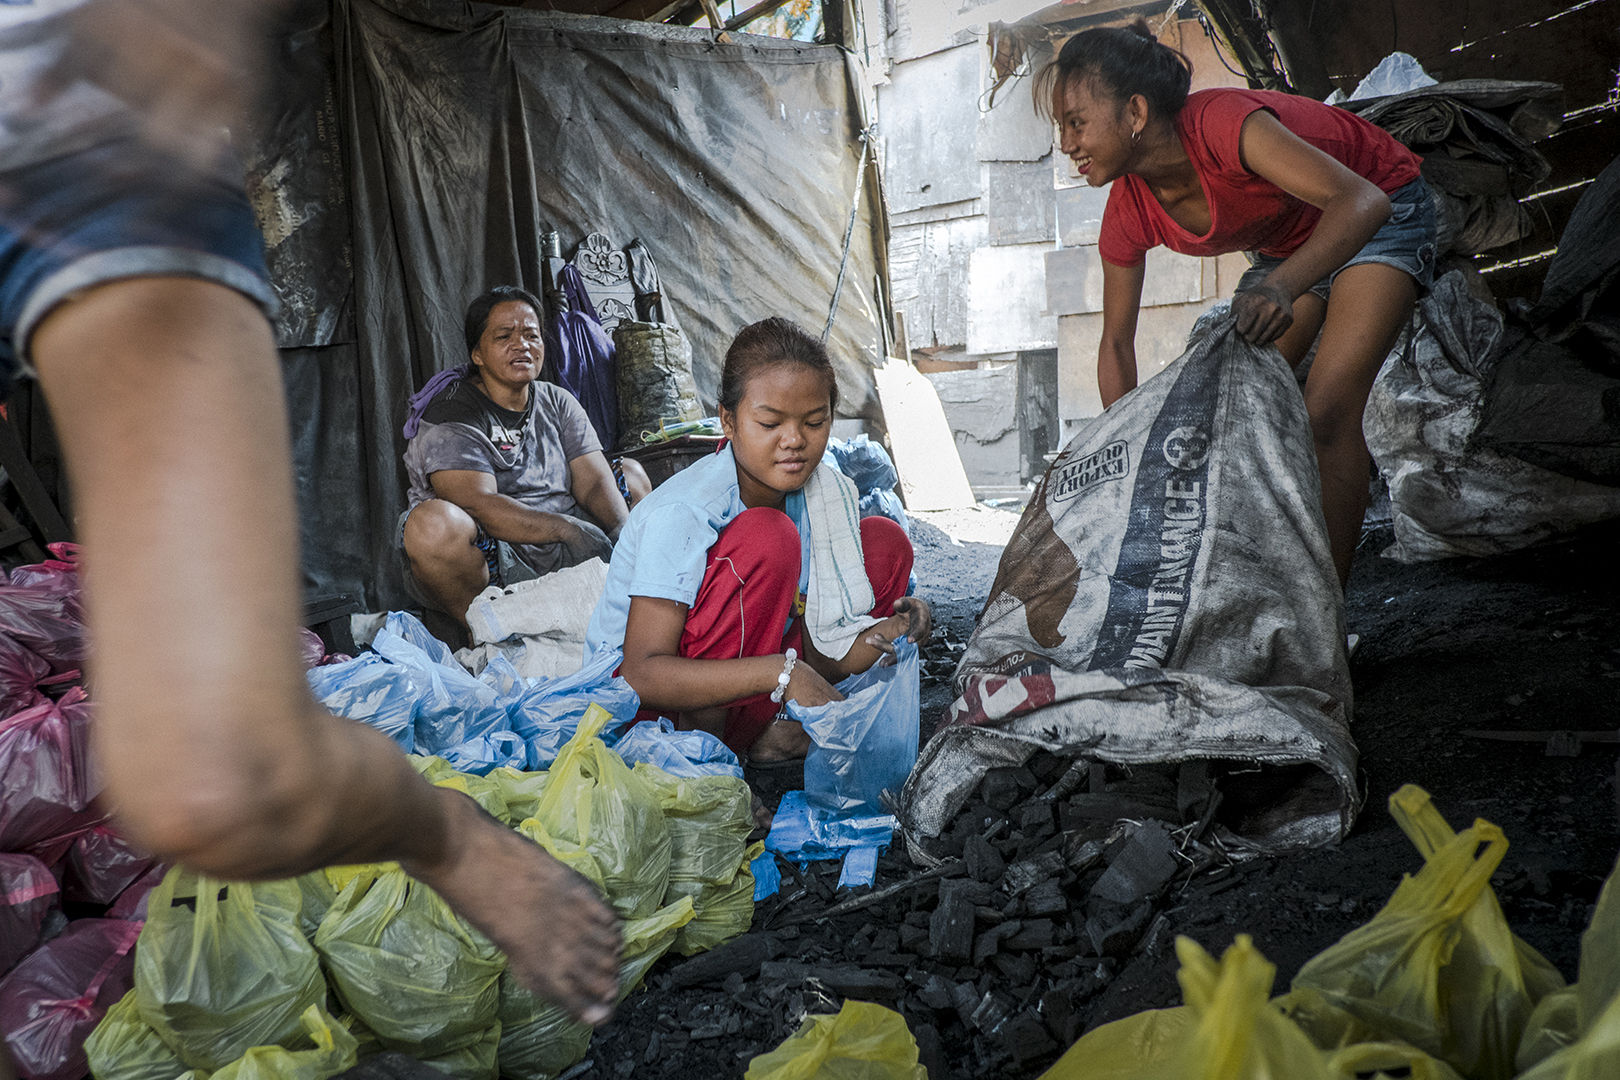 Larisa (14) works at the charcoal factory 5 days a week. She stopped school a few years ago. She doesn't have an official birth certificate and therefore cannot officially sign for classes. The local school head master agreed to accept her for one more year after which she will stop her education. Her sister, Larisa (13) who also work at the charcoal production has hearing difficulties, as the family have no funds to pay for the check up and the treatment. Malabon, Philippines, 2017